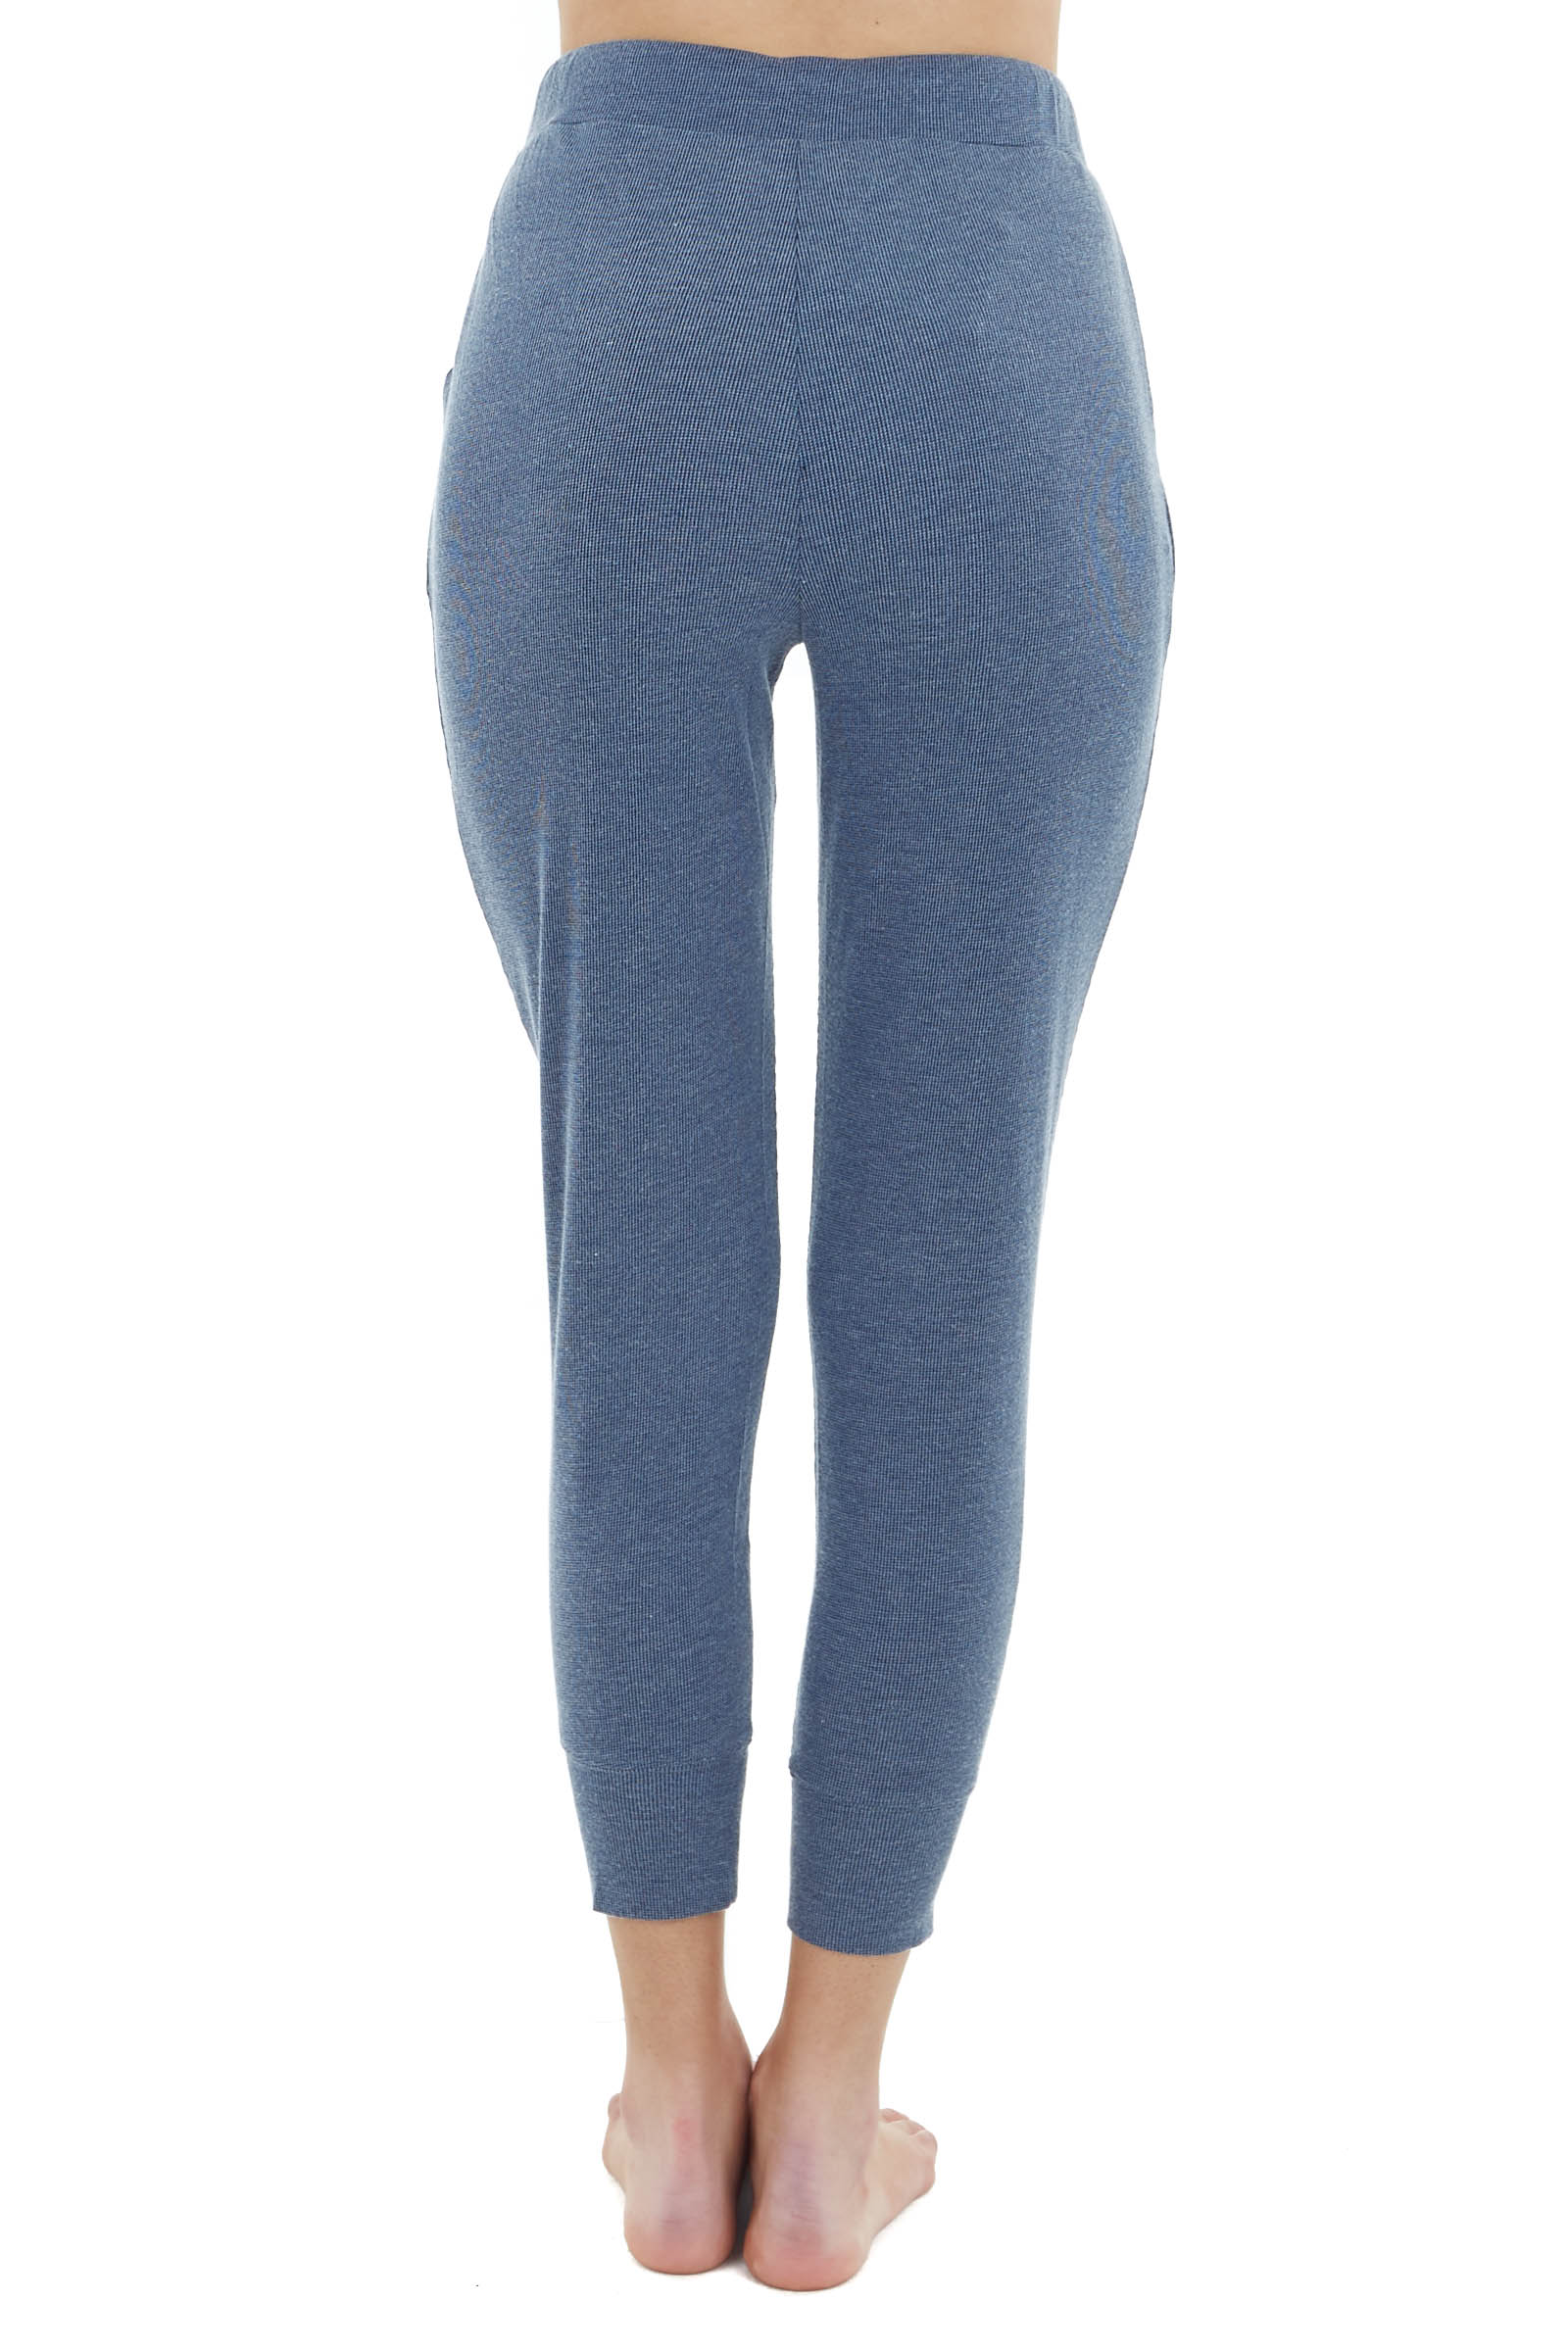 Ocean Blue Knit Joggers with Waist Tie and Pockets